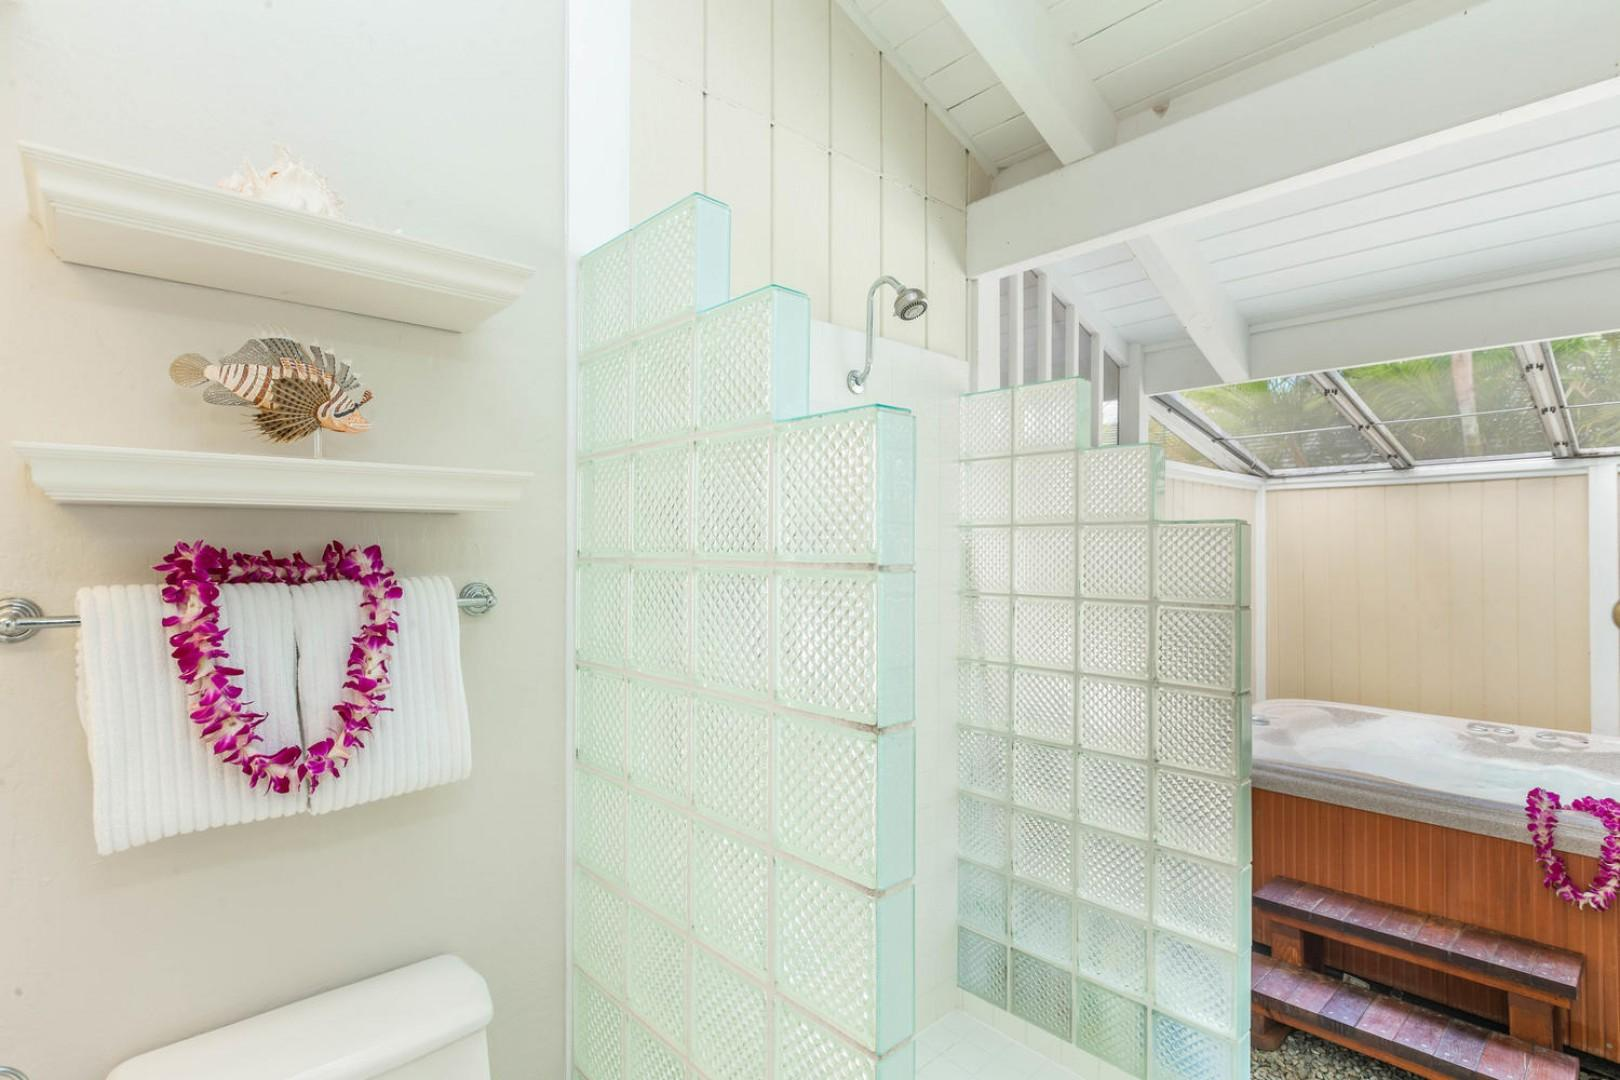 Tiled shower in the master creates a spa look and feel